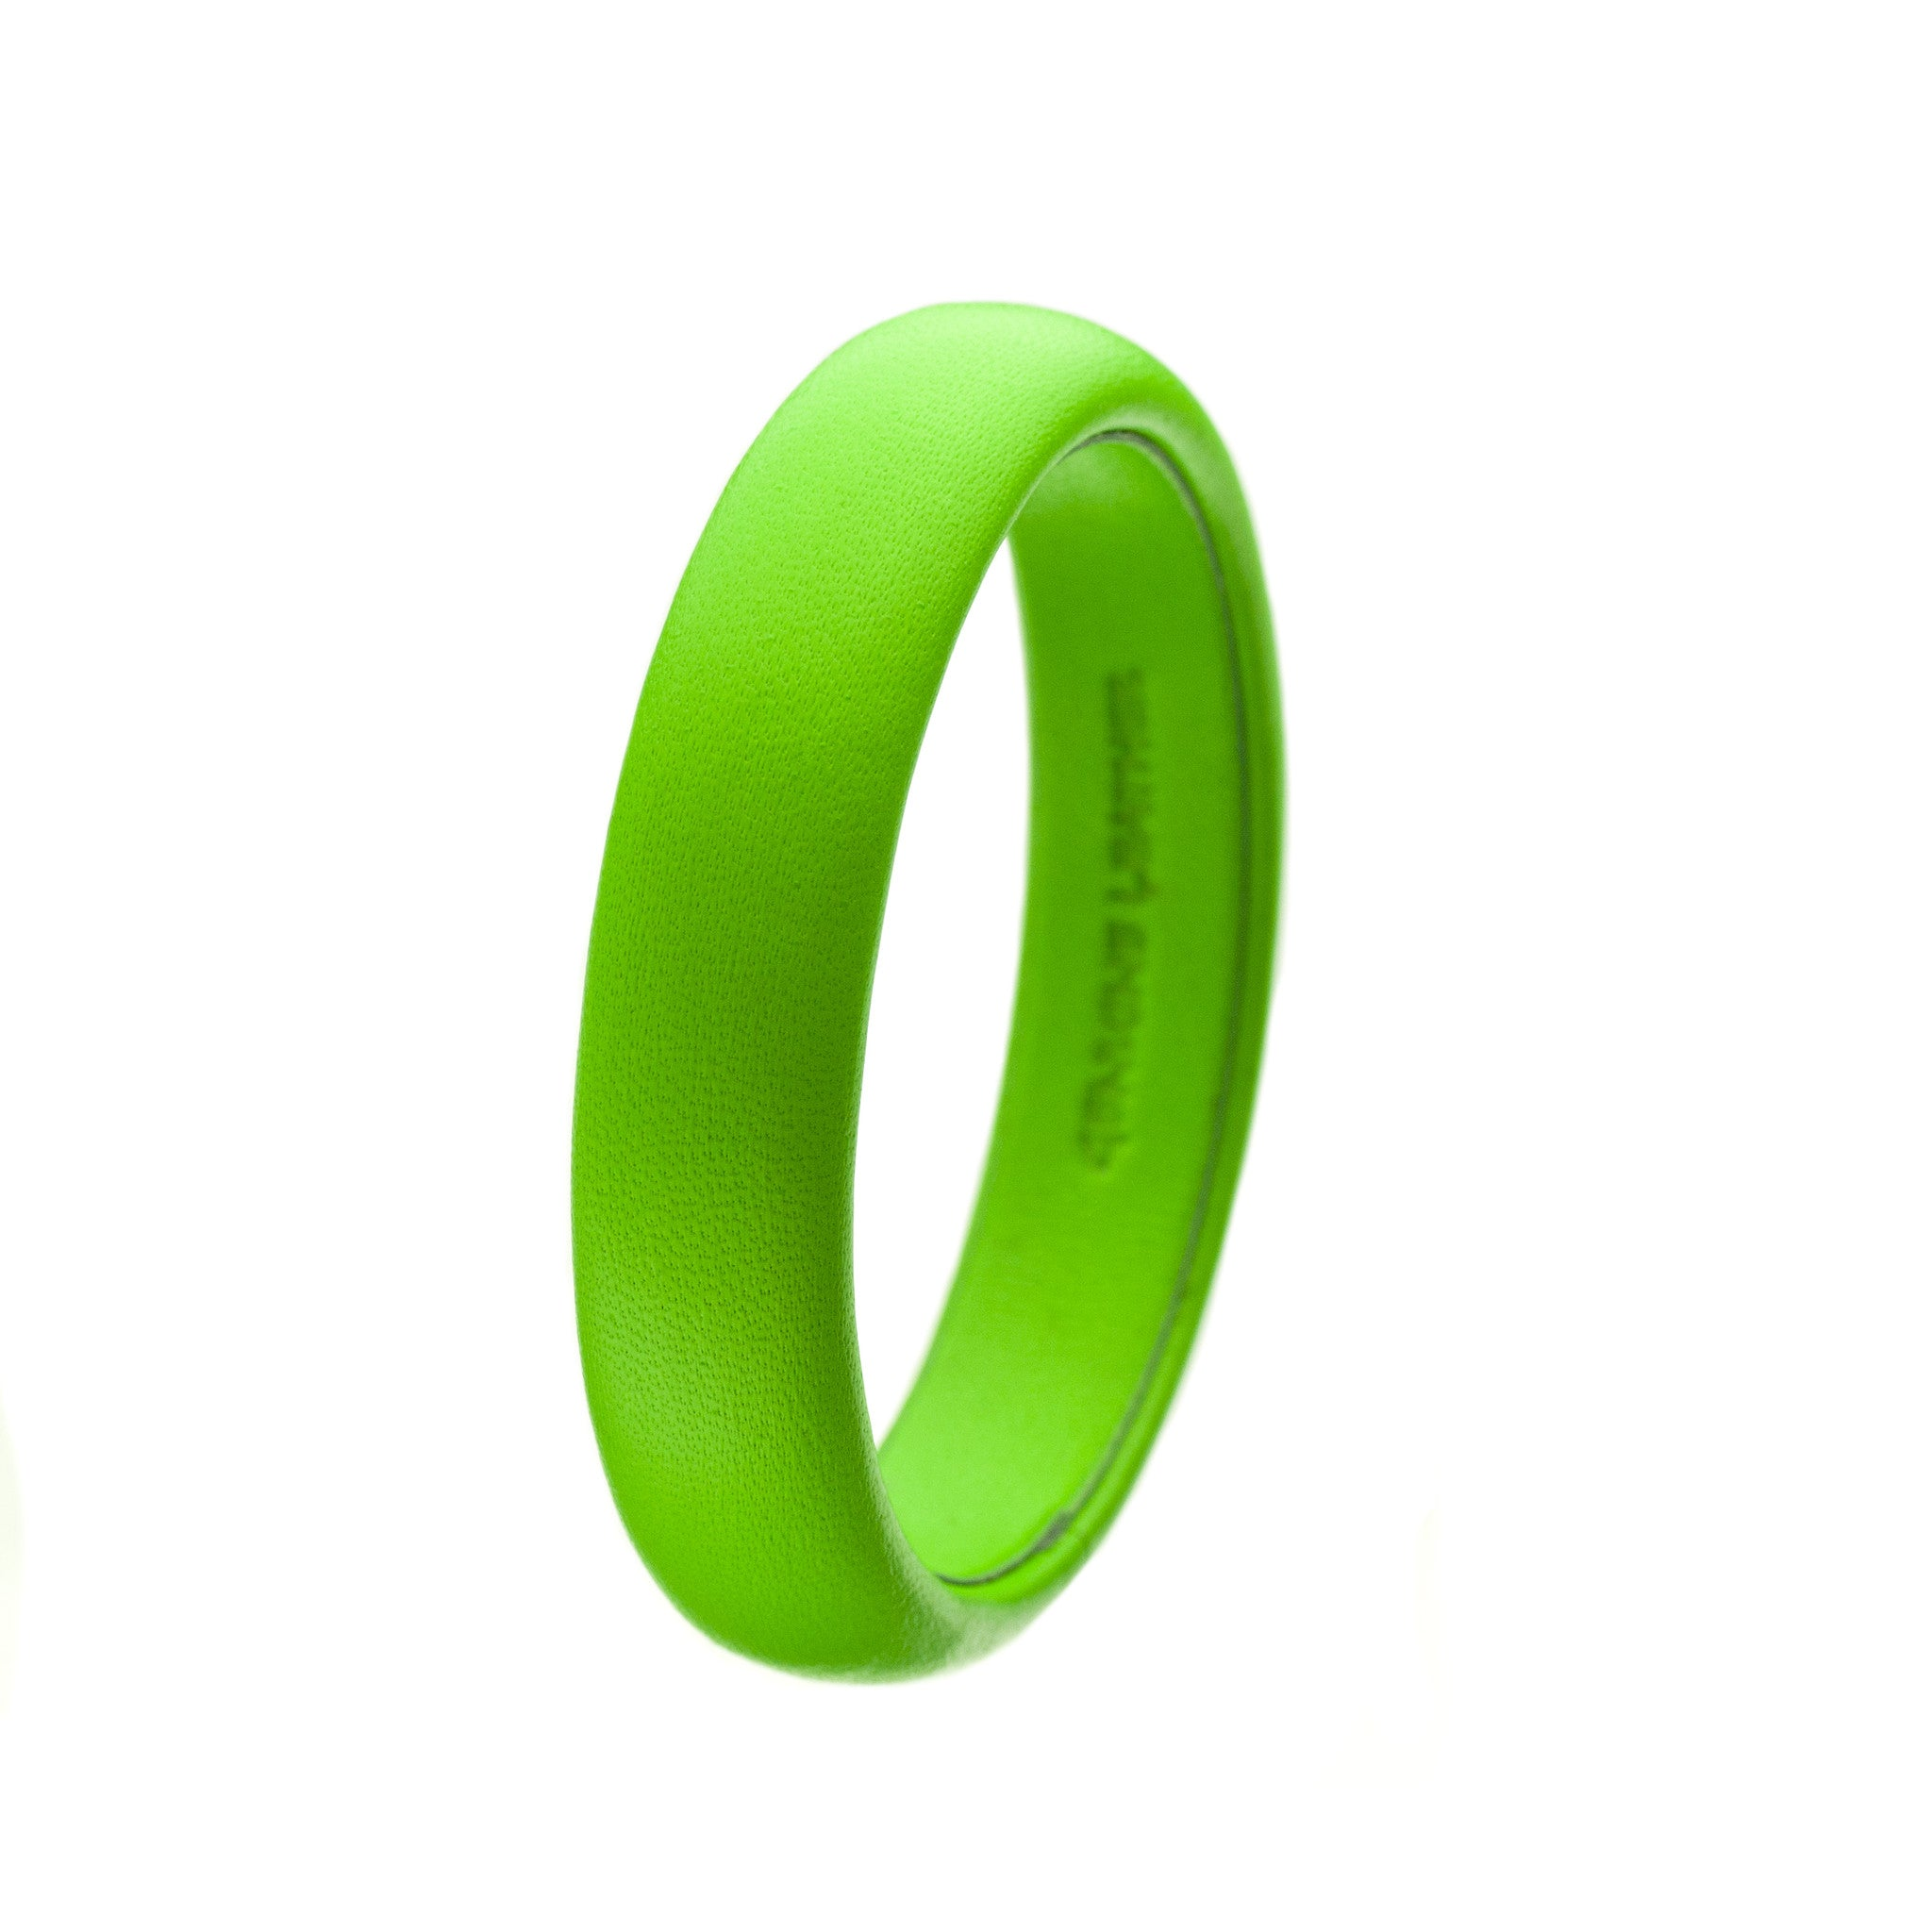 The Aria Bangle ~ Fluorescent Neon Green Lambskin Leather Bangle Bracelet